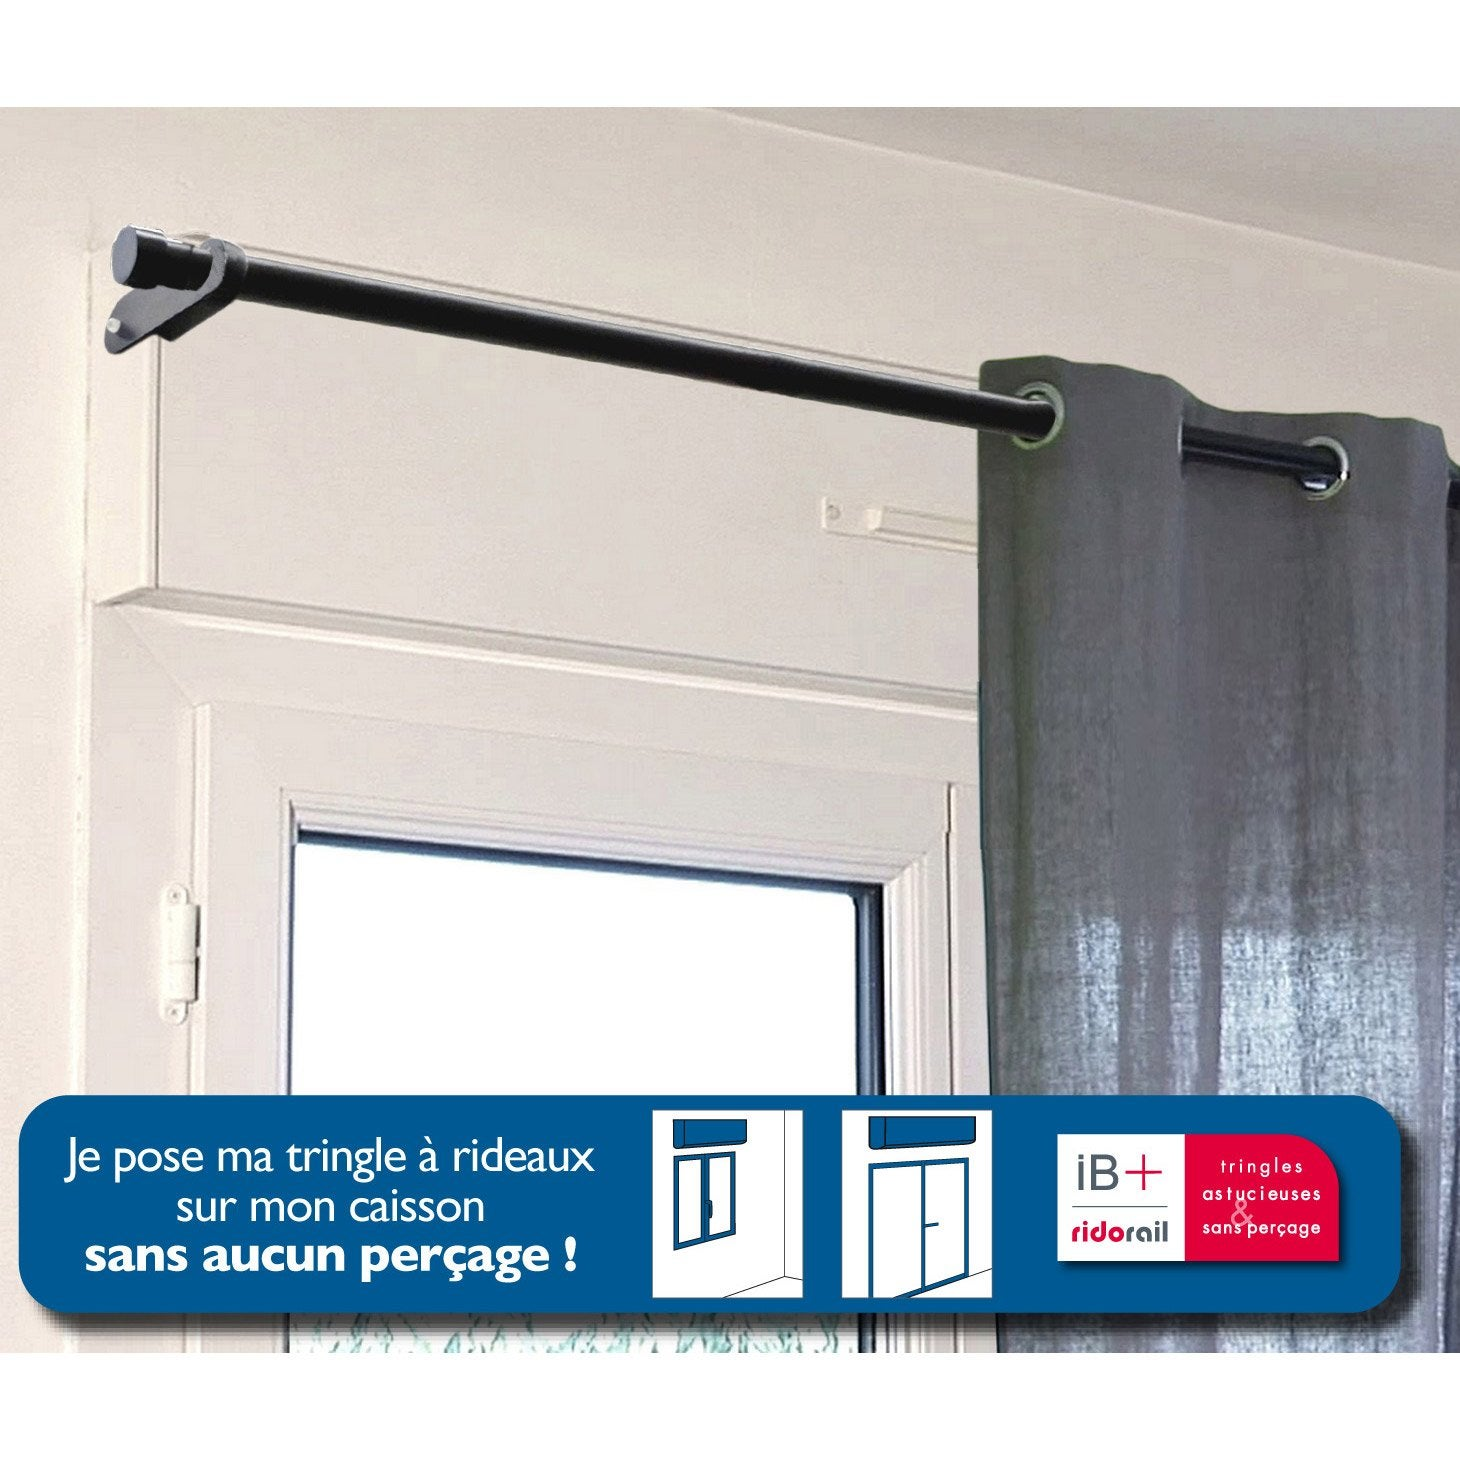 Support sans per age tringle rideau ib 25 mm noir mat for Entrebailleur de fenetre sans percage